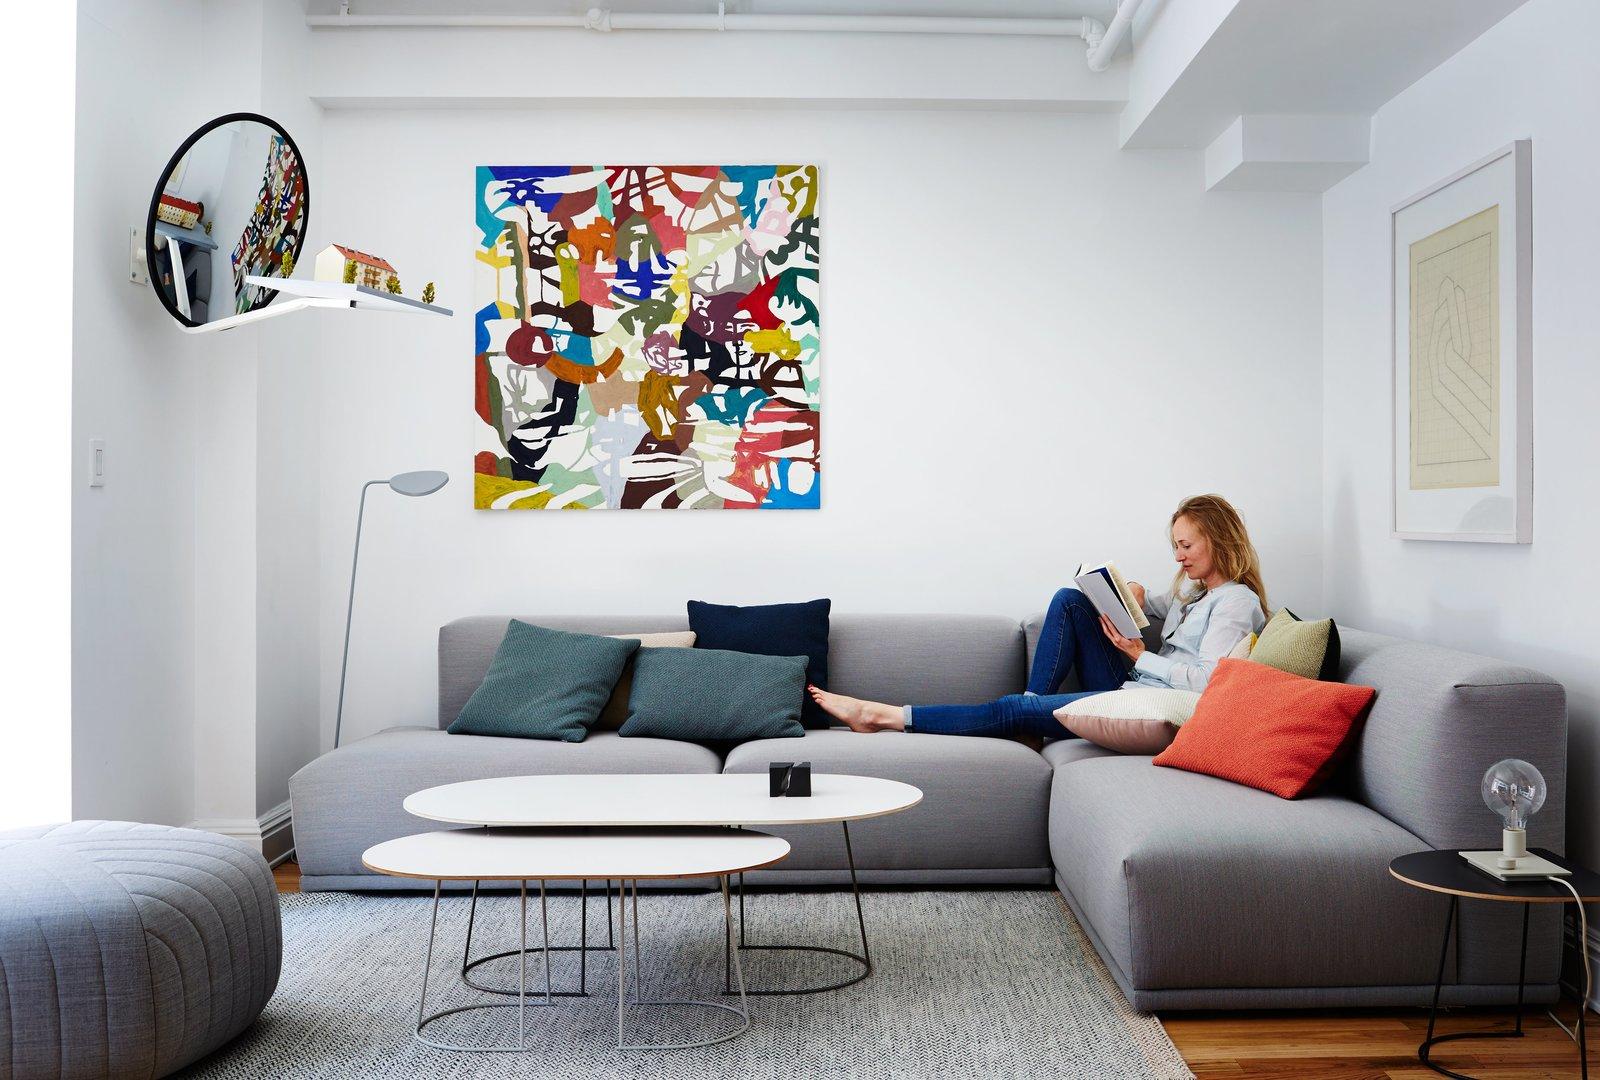 Living Room, Sectional, Coffee Tables, Rug Floor, Medium Hardwood Floor, and End Tables The New York loft of Muuto cofounder Peter Bonnén showcases a shipping container's worth of furniture from Denmark. His wife, Jasmi, relaxes among Muuto designs, including a Connect sofa by Anderssen & Voll and Airy tables by Cecilie Manz. The wall sculpture is by artist Anders Kappel; the painting is by Peter's brother, Kaspar.  Photo 2 of 14 in A Danish Design Kingpin Moves to NYC with a Shipping Container of Furniture in Tow